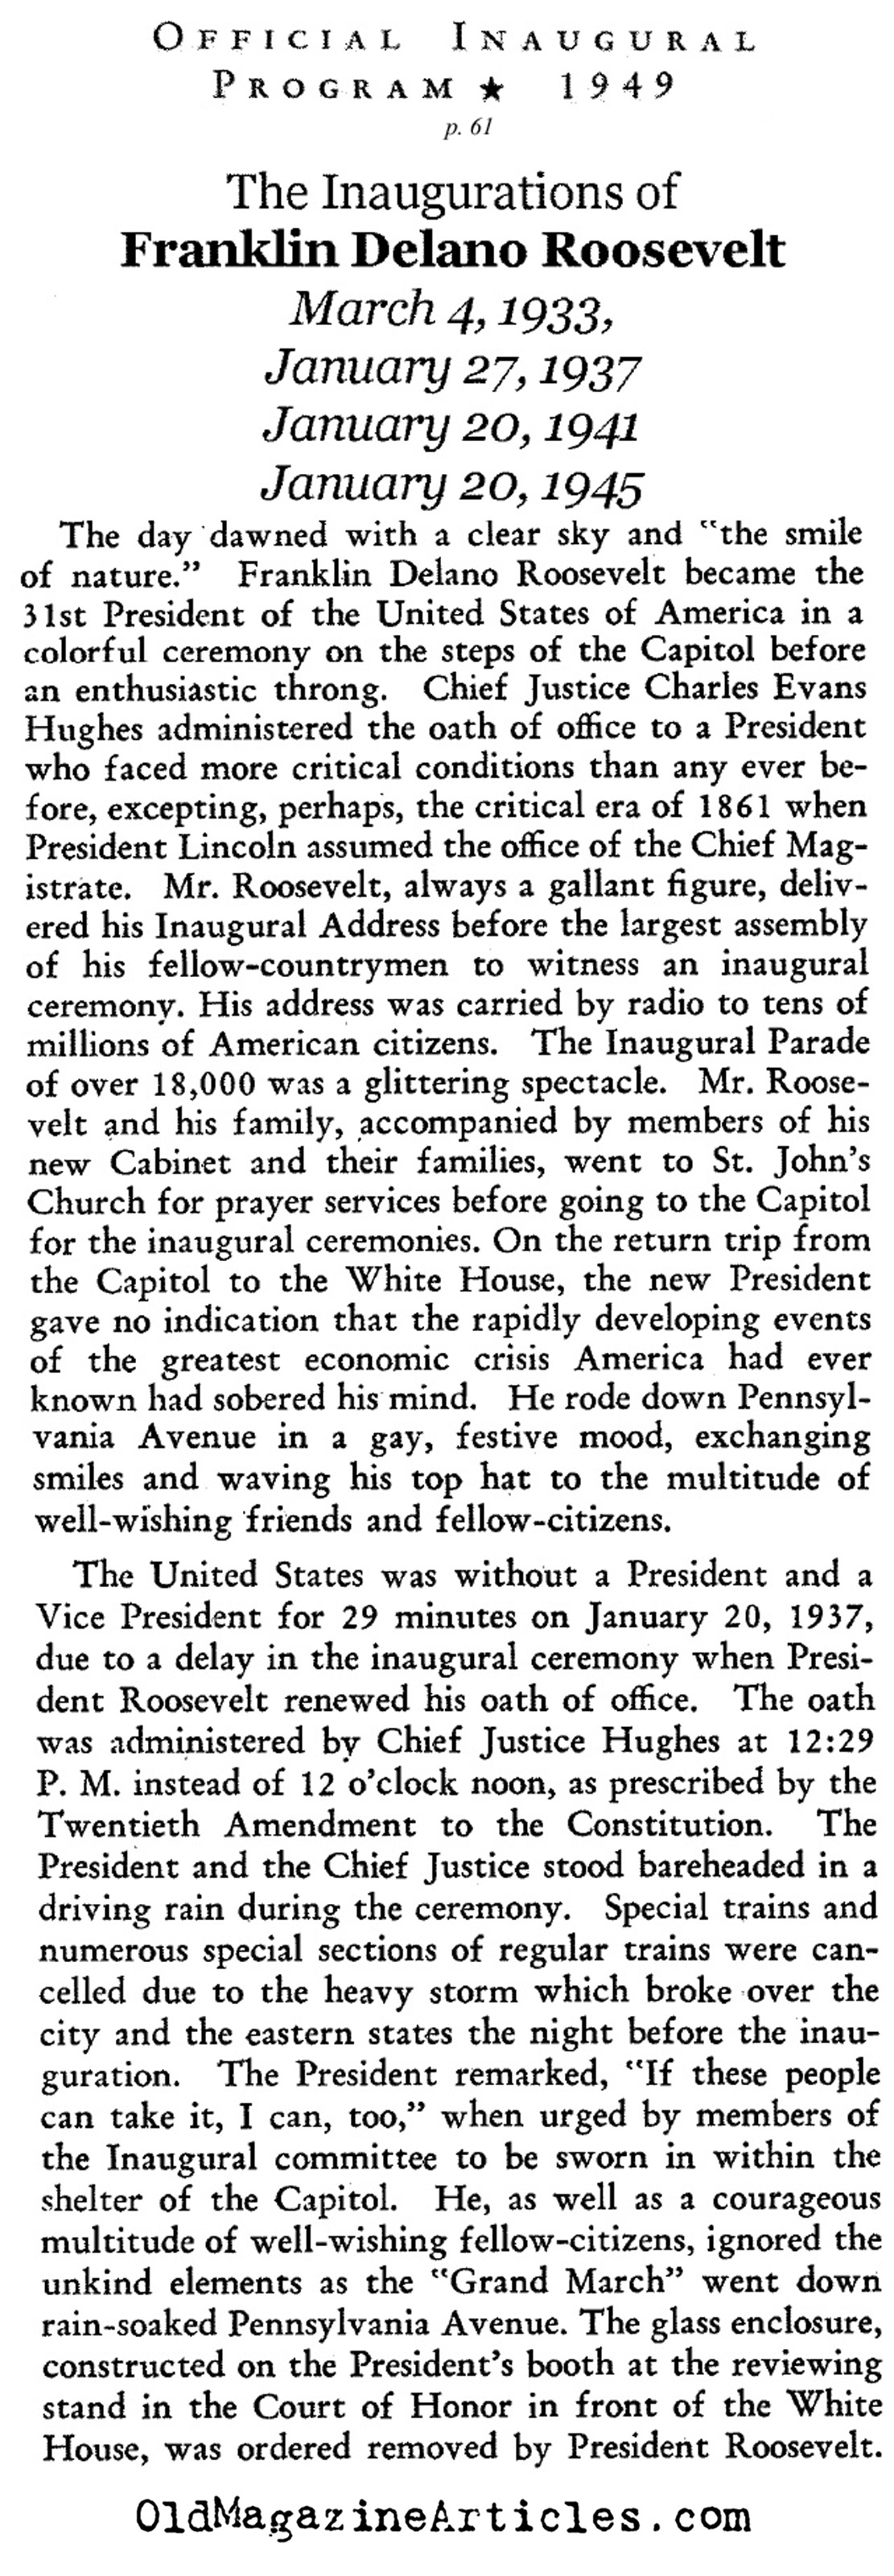 The Four Inaugurations of F.D.R. (from the Truman Inaugural Program, 1949)